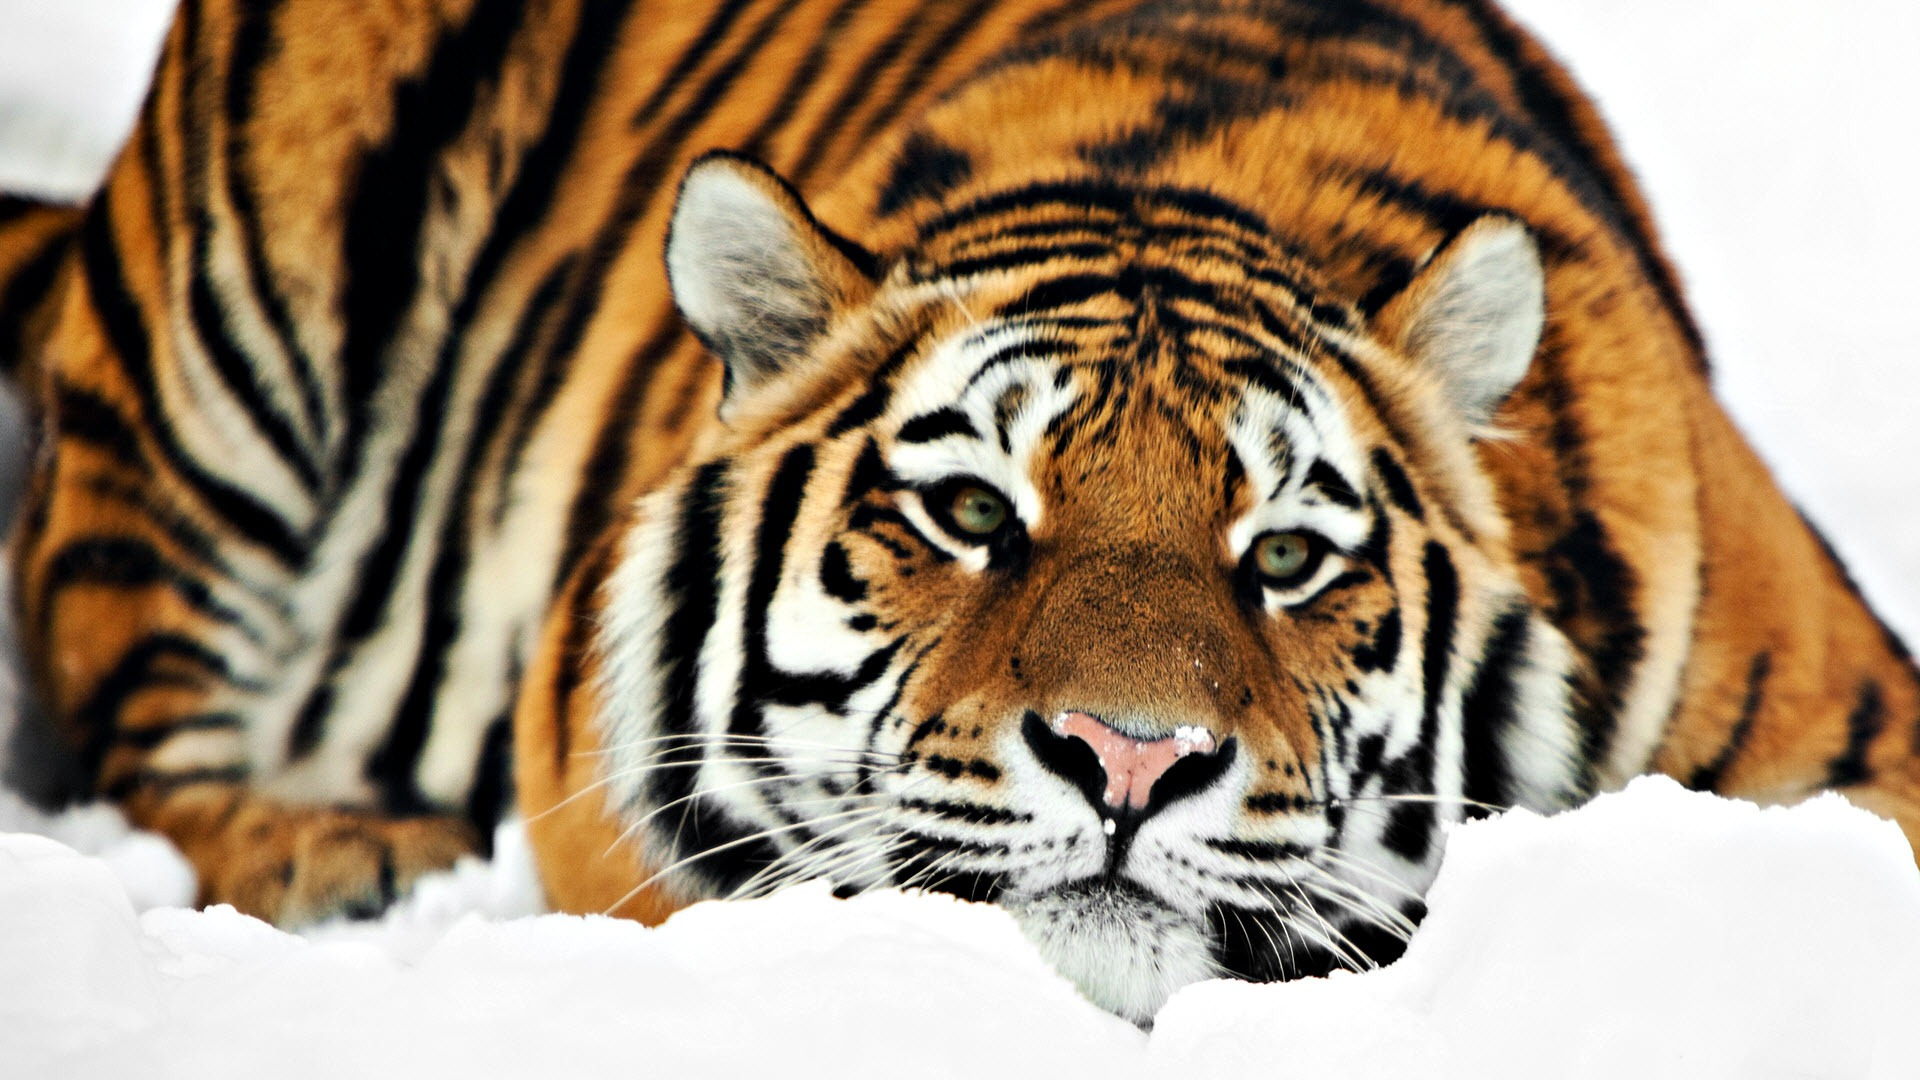 Collection of Desktop Wallpaper Tiger on HDWallpapers